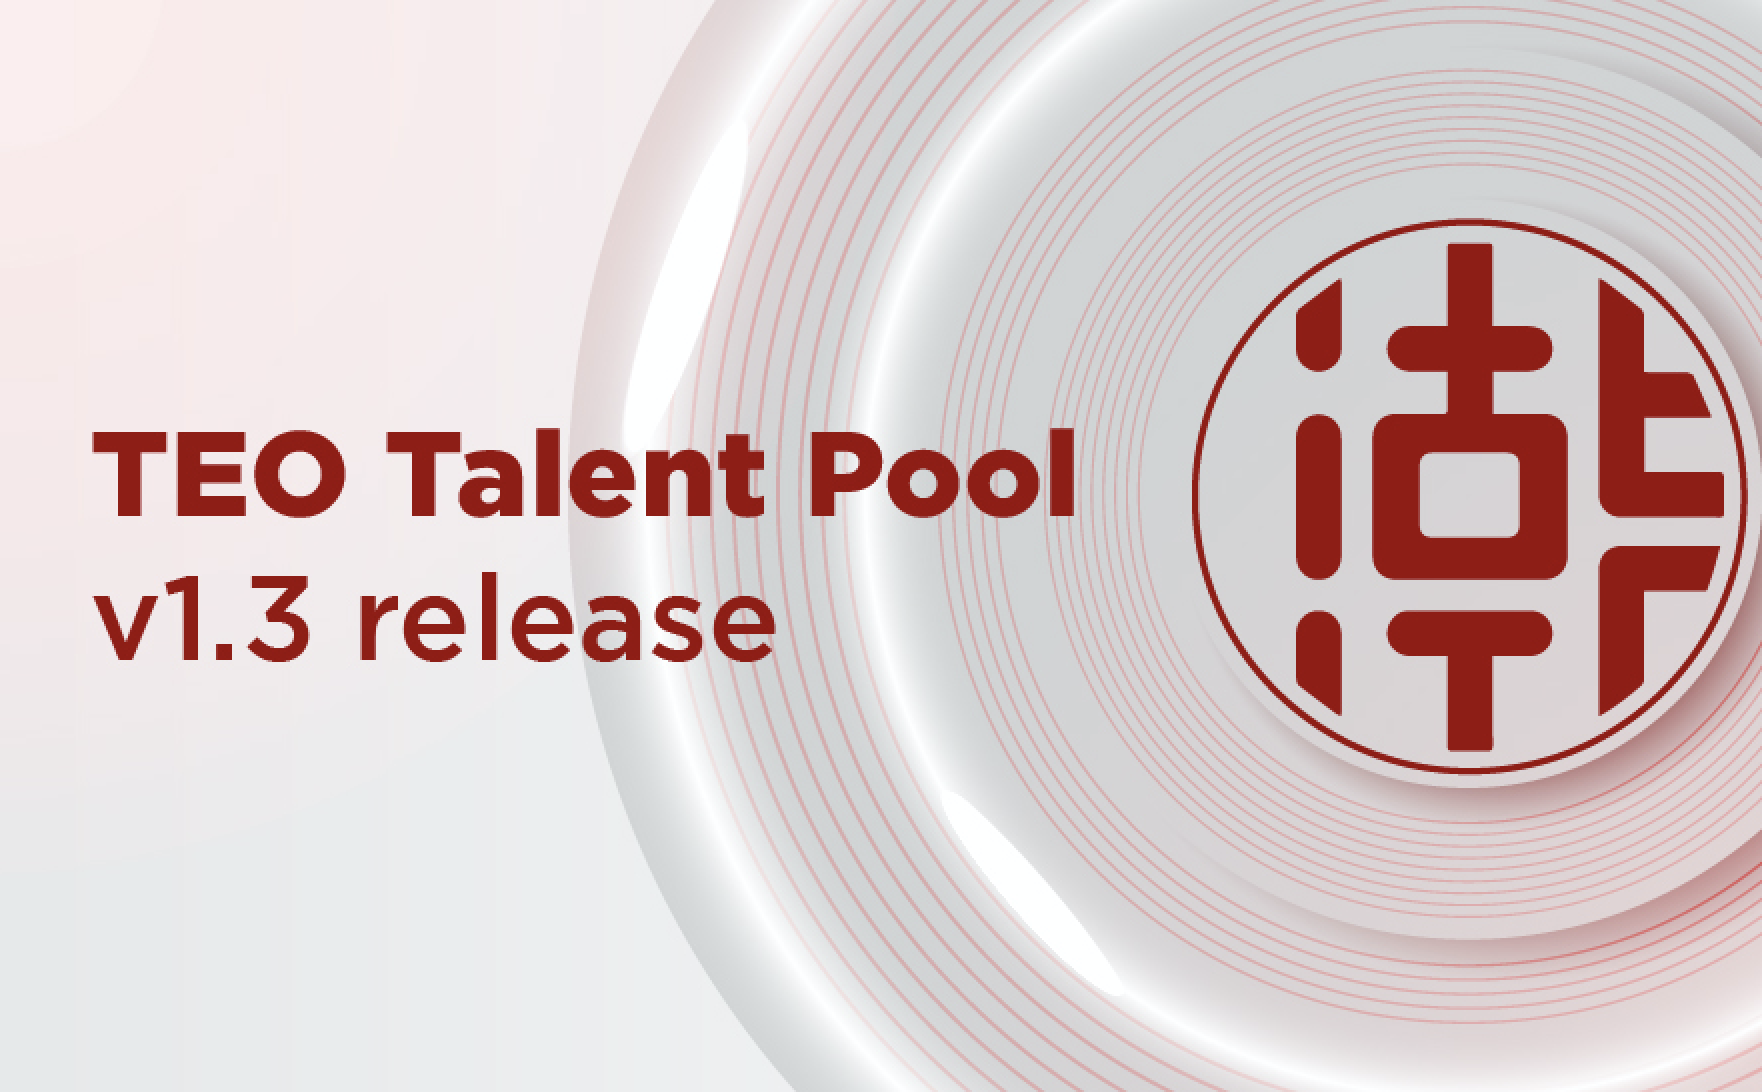 New Release of TEO Talent Pool v1.3 with Email invitation, balance trackability and token house keeping